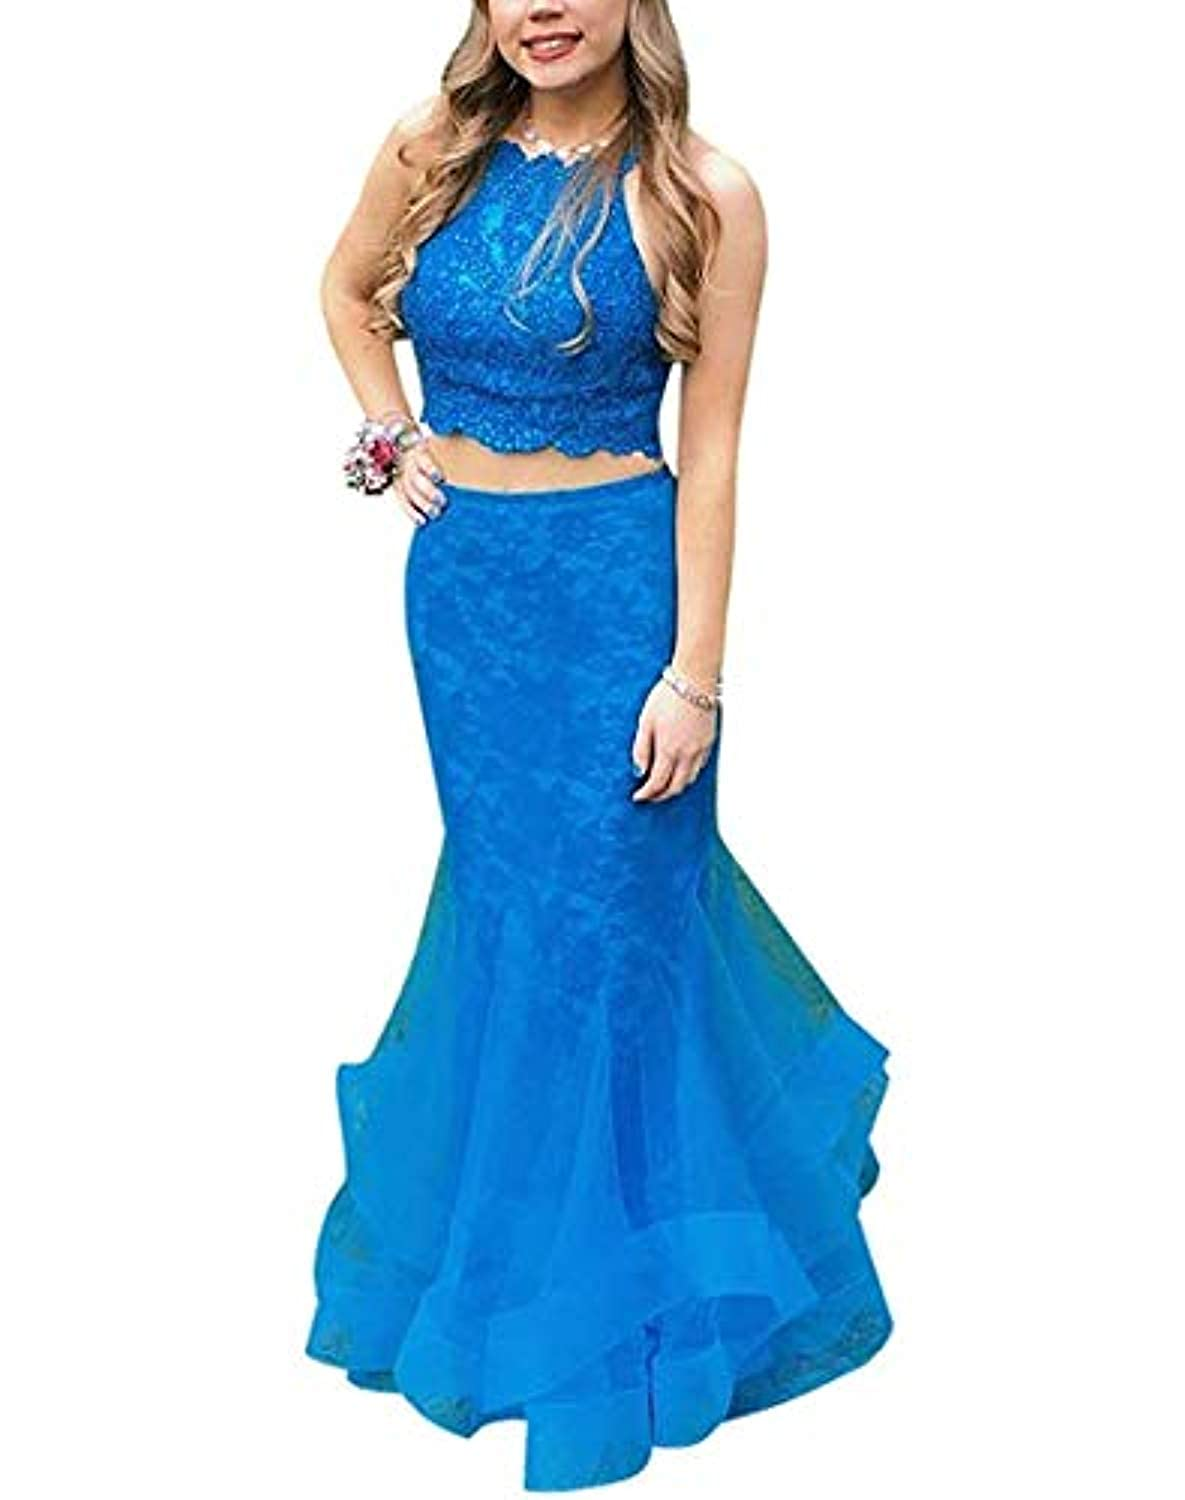 bluee Marirobe Women's Halter Multilayered Evening Dresses Tulle Beaded Prom Gown 2 Piece Formal Party Dress